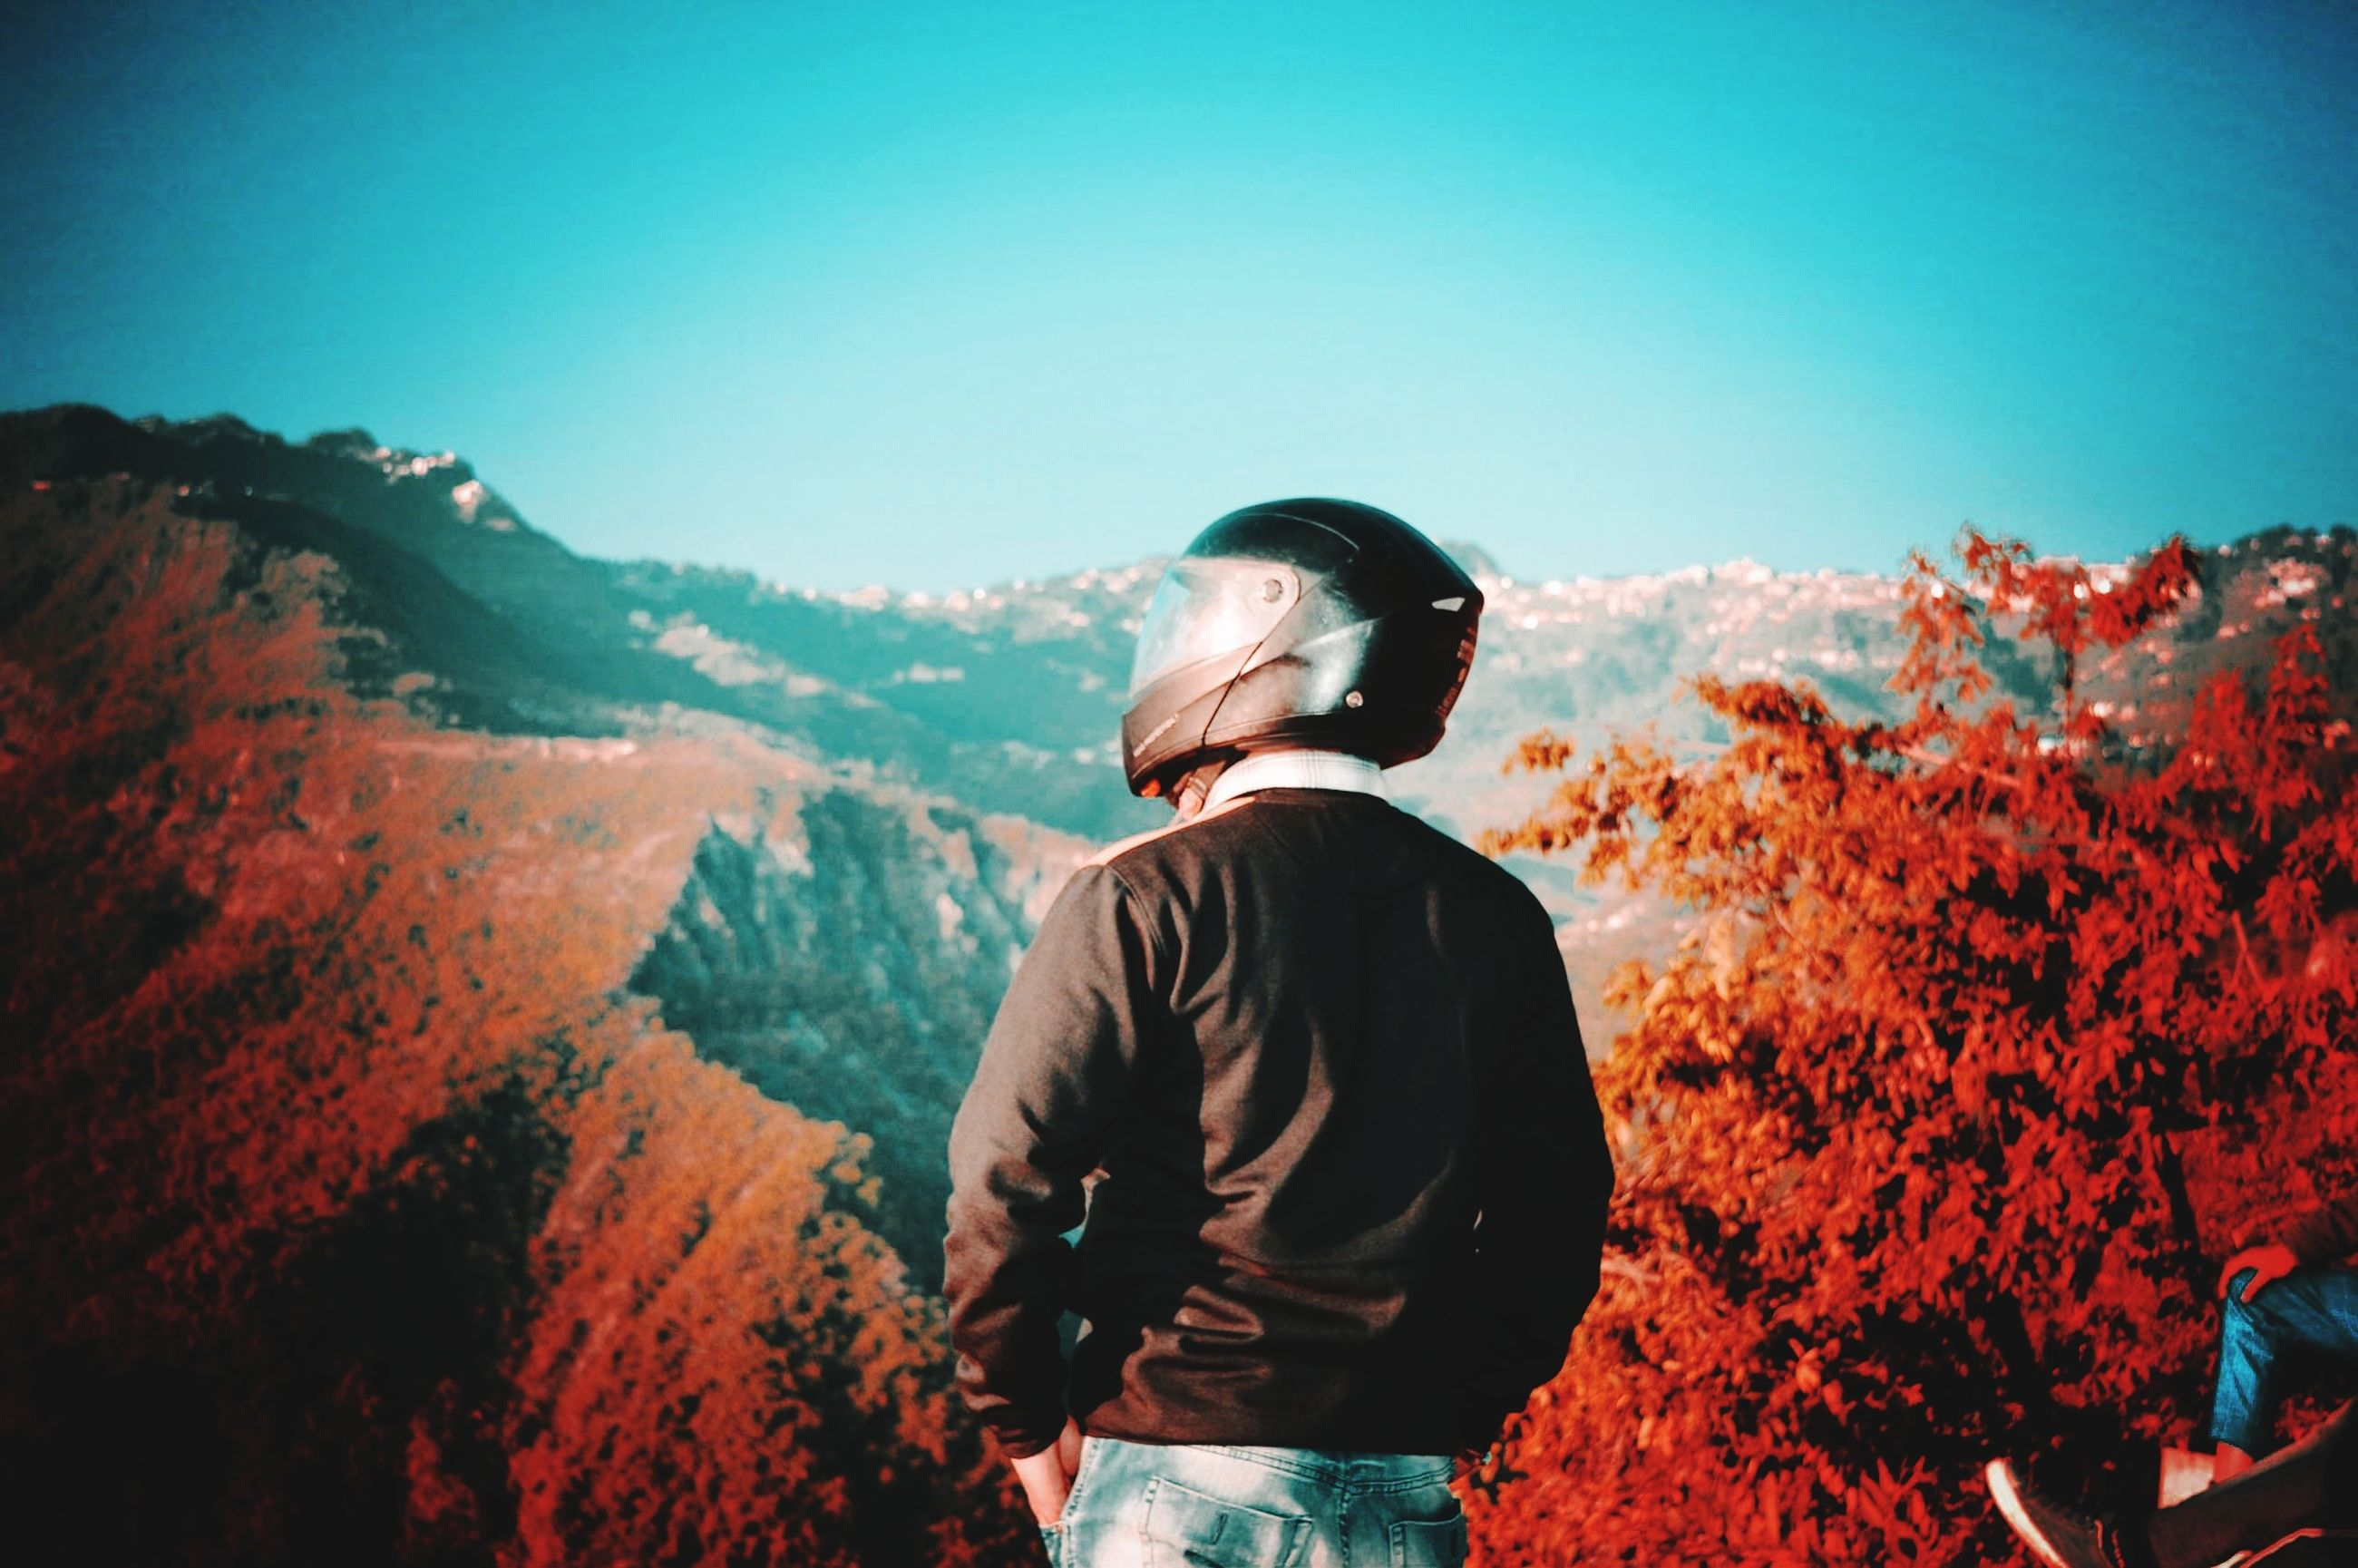 sky, one person, real people, nature, mountain, standing, beauty in nature, lifestyles, rear view, leisure activity, casual clothing, tree, clear sky, plant, day, waist up, environment, sunlight, tranquility, looking at view, outdoors, change